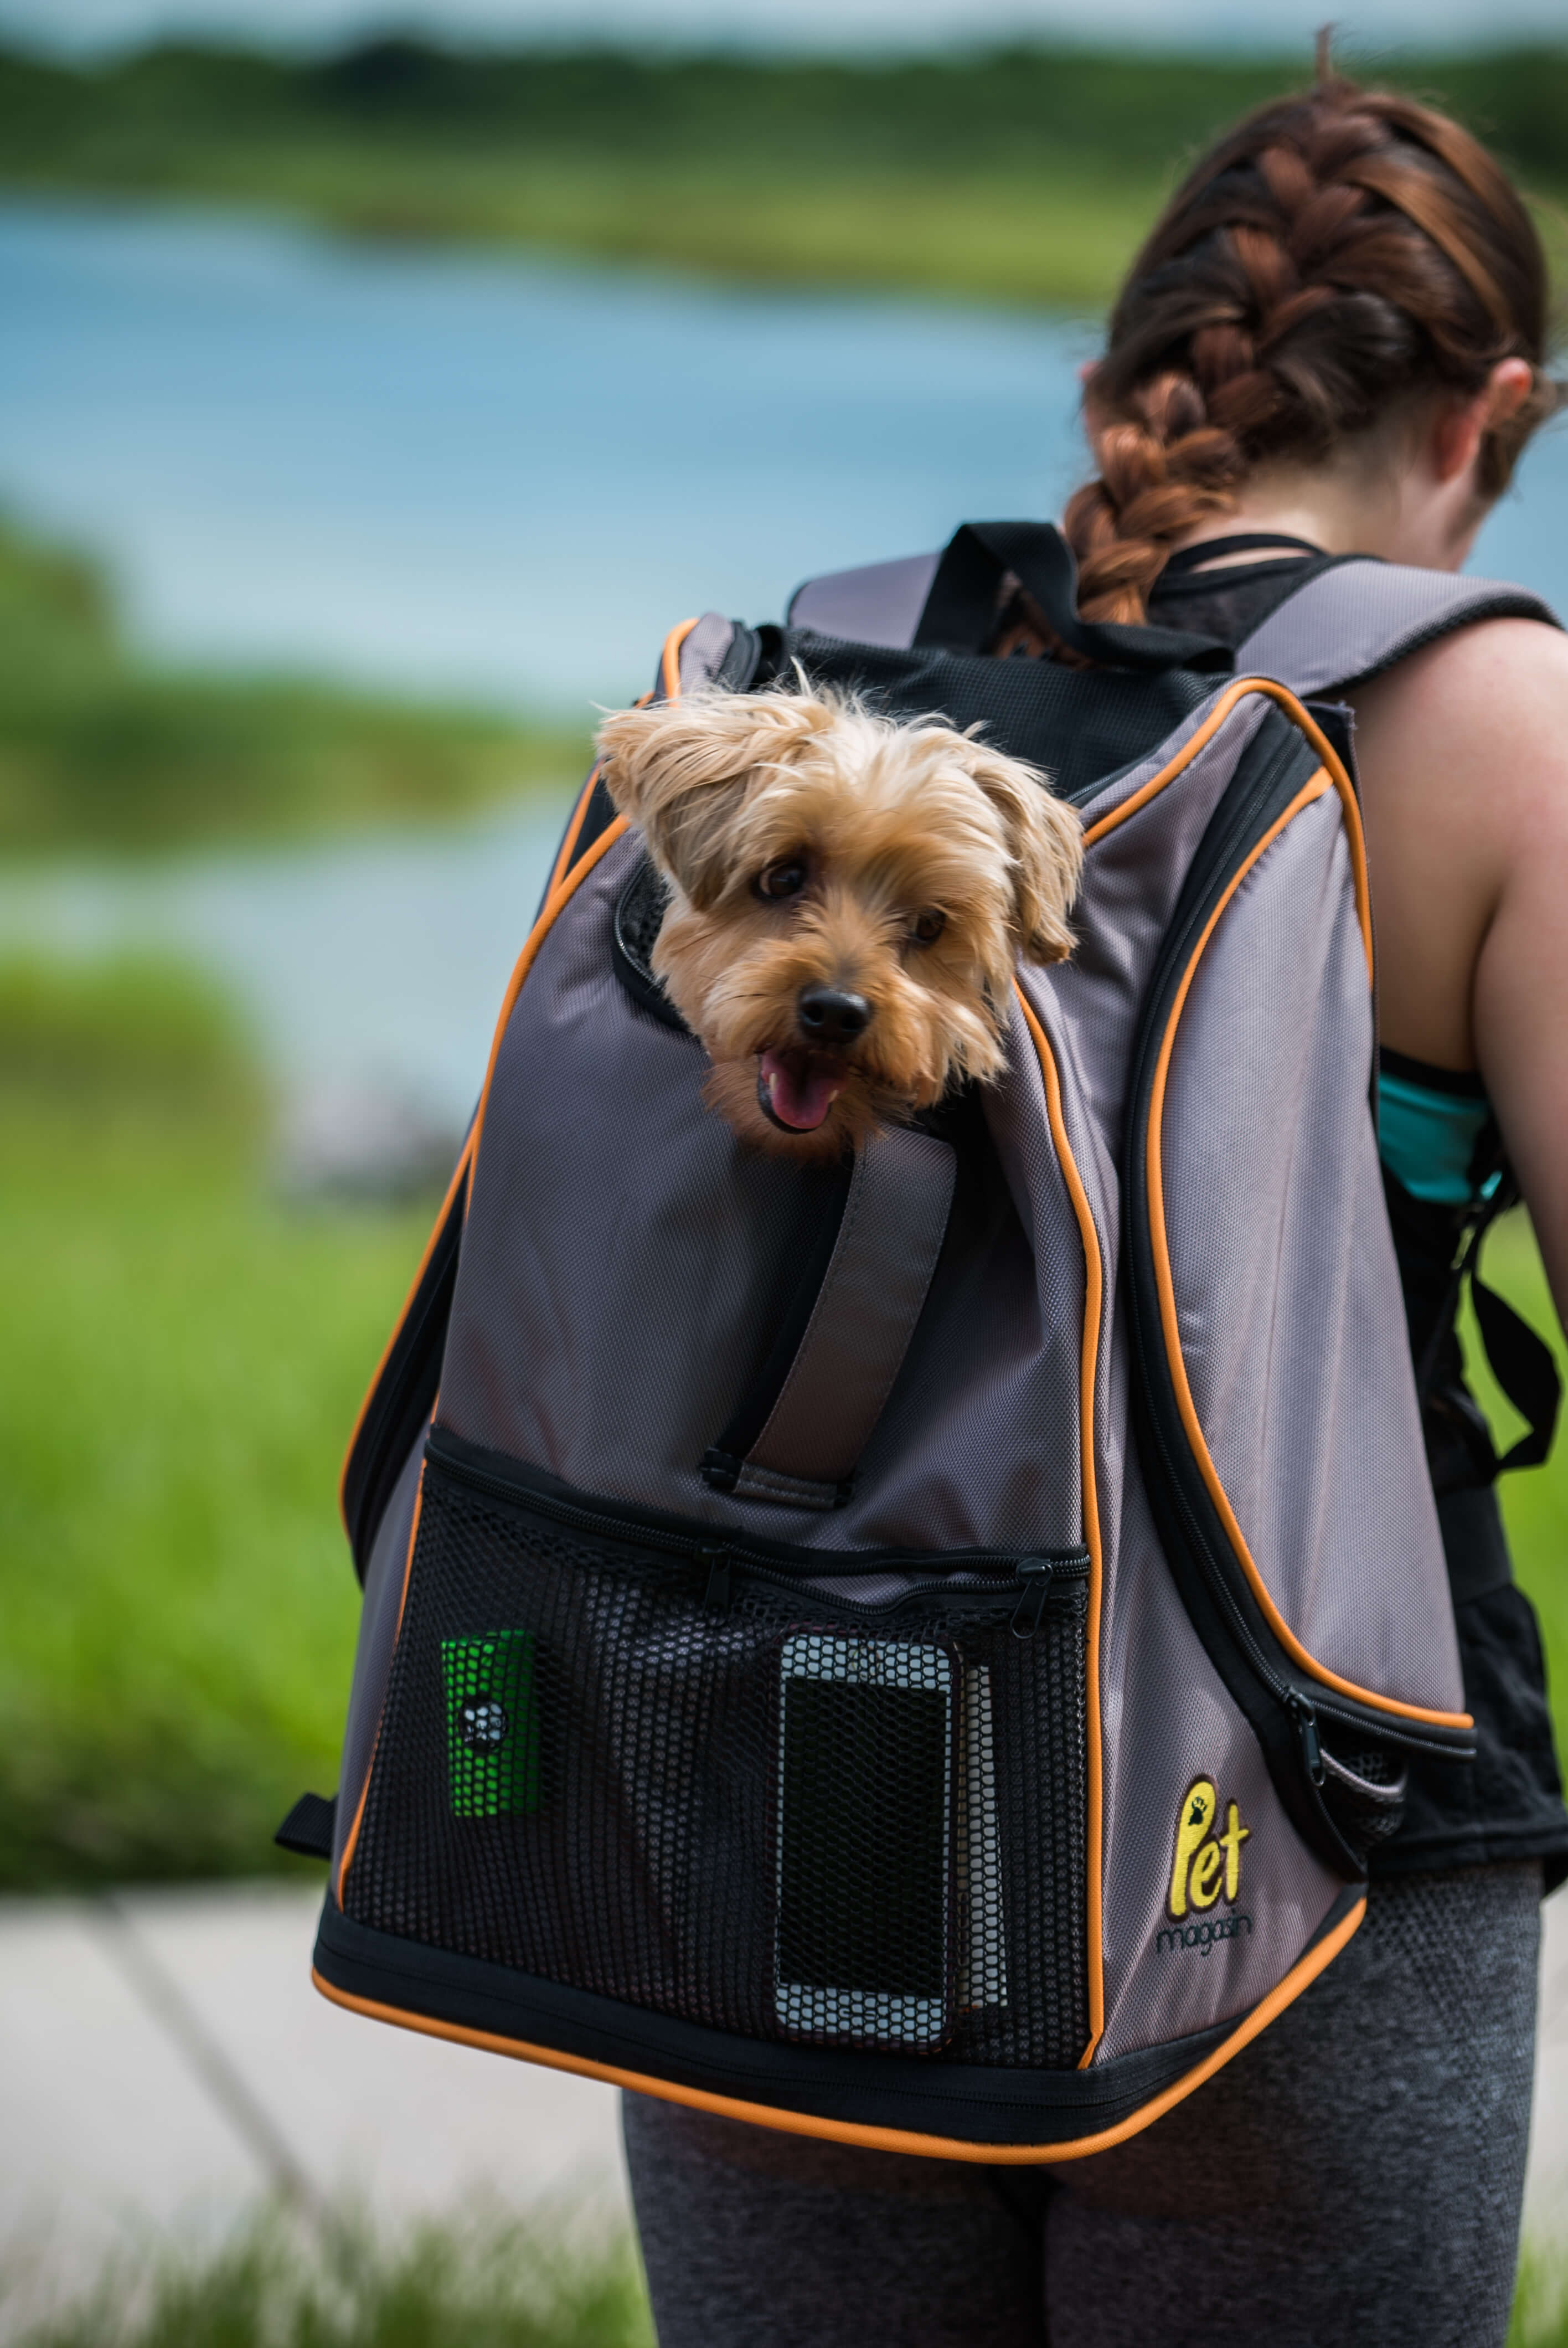 Lambo Backpack from Pet Magasin pet exercises younfolded blog